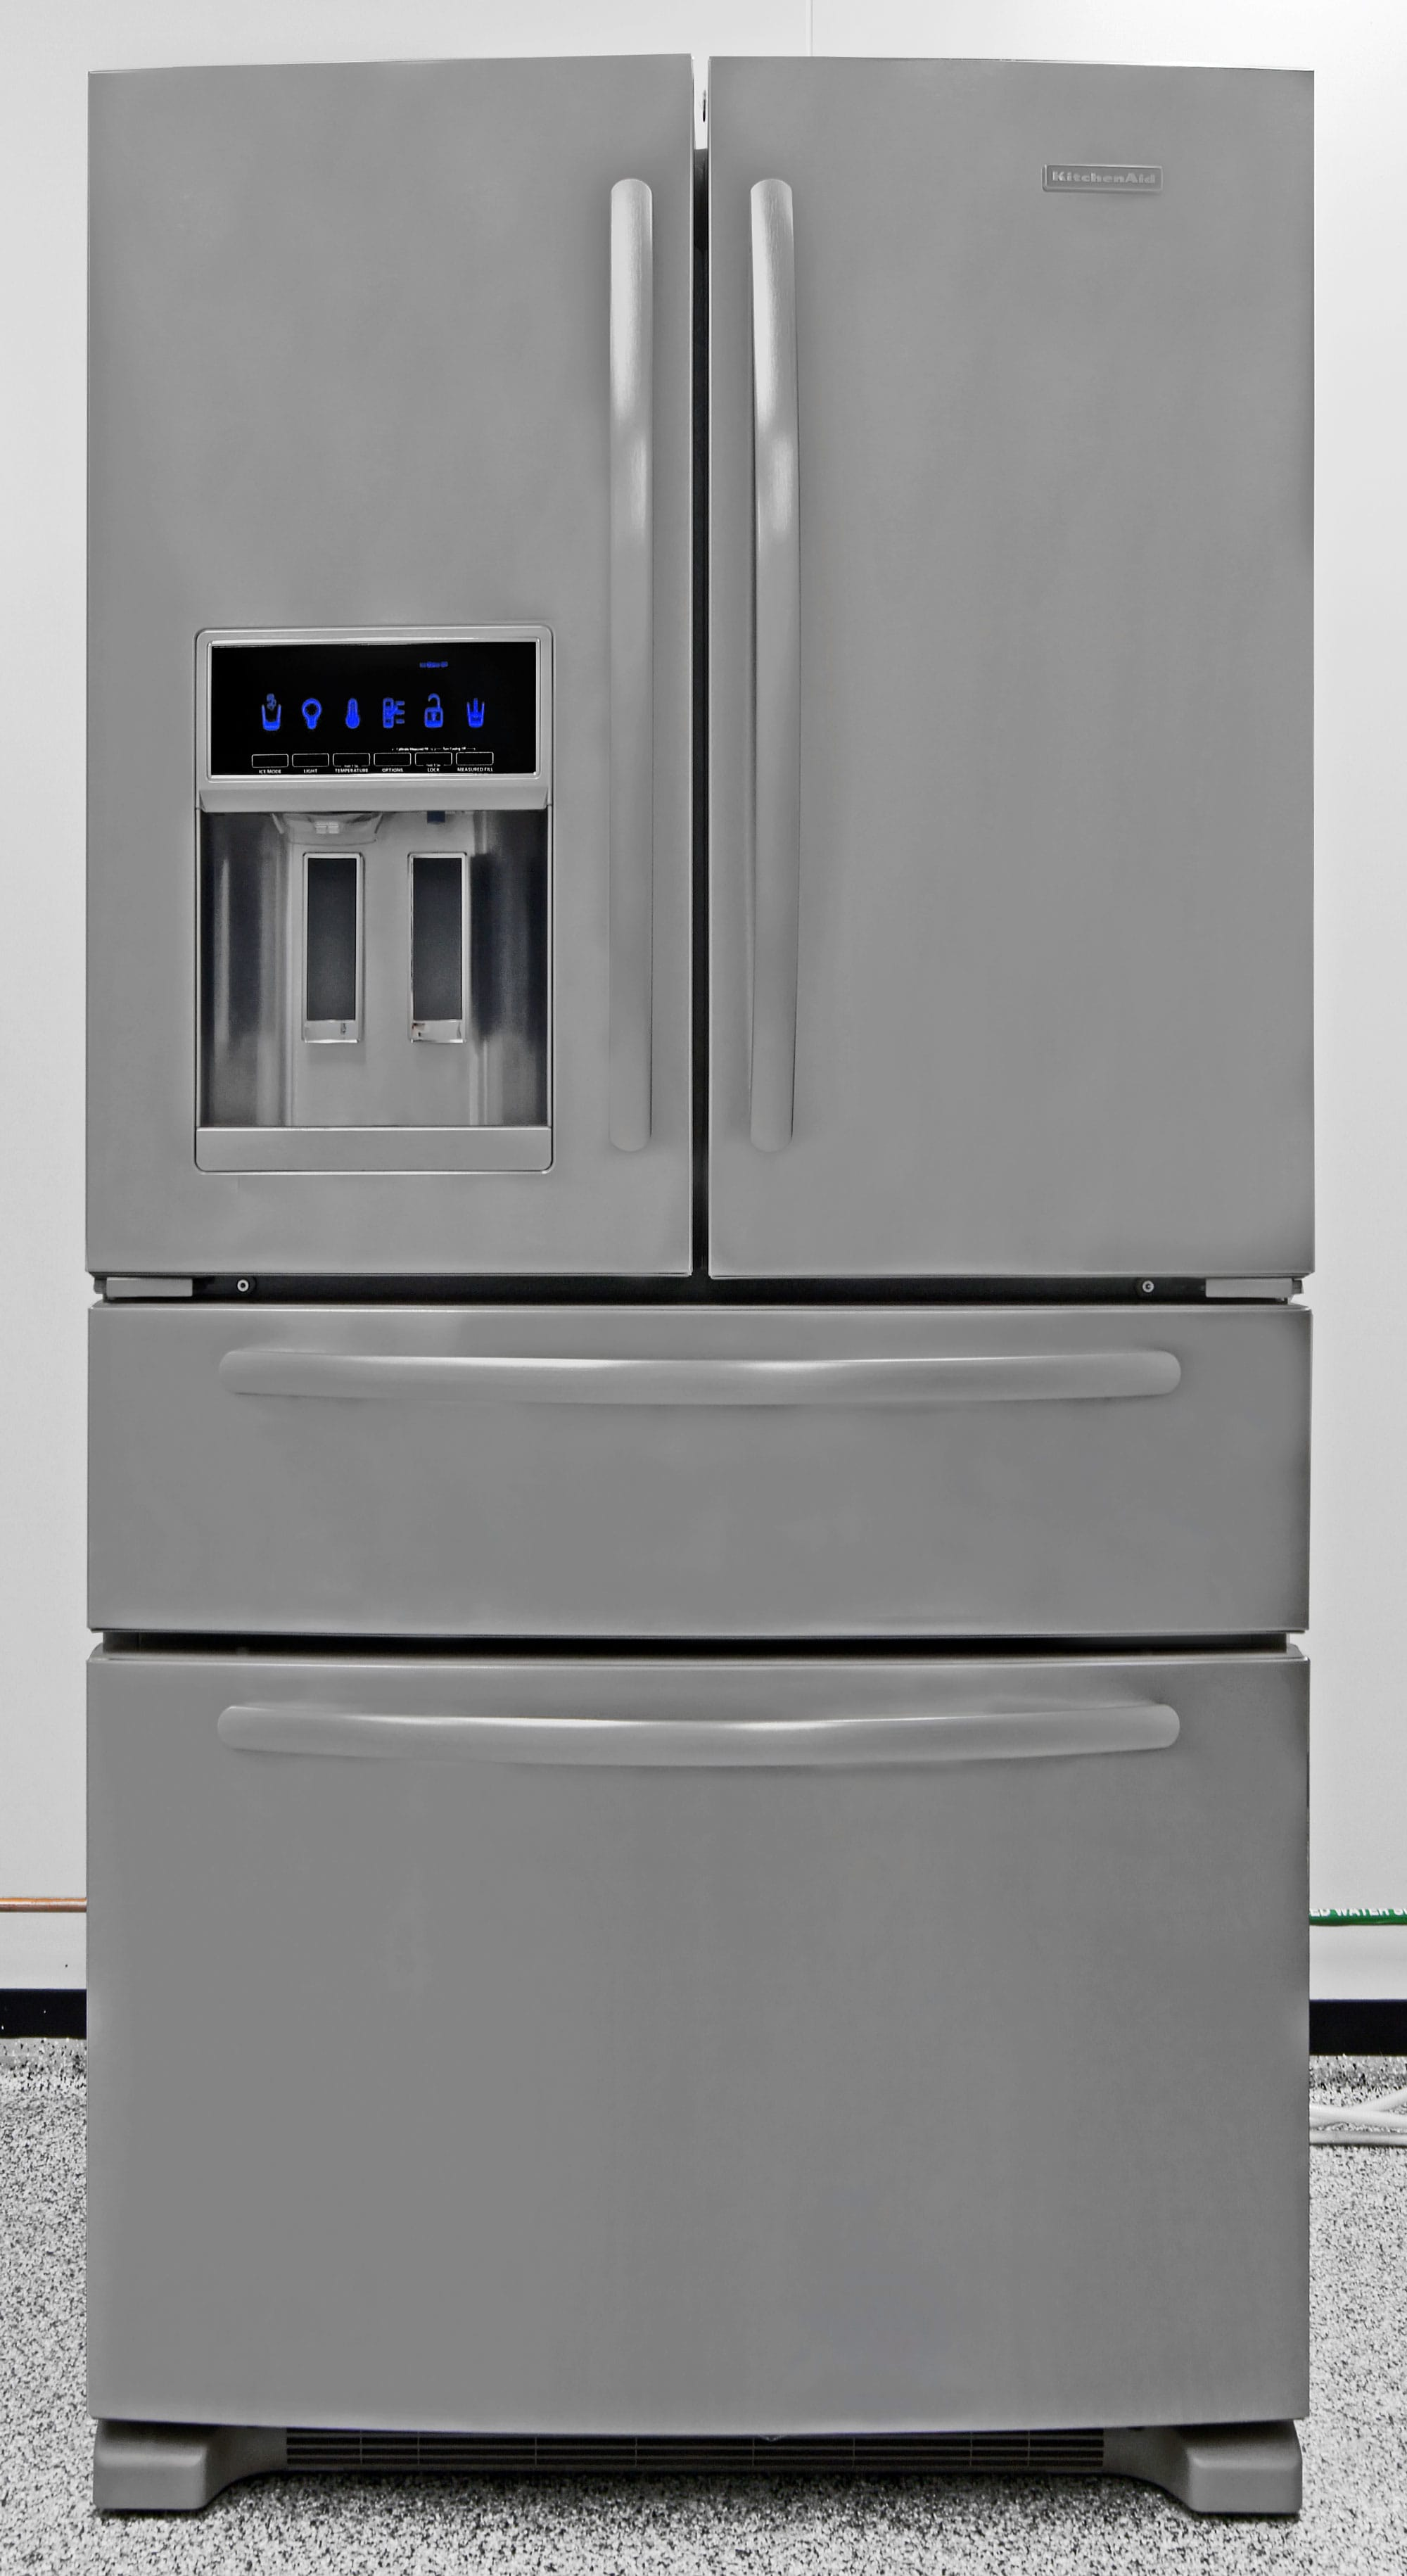 Charmant The KitchenAid KFXS25RYMS Is One Of The More Affordable Four Door Fridges  On The Market